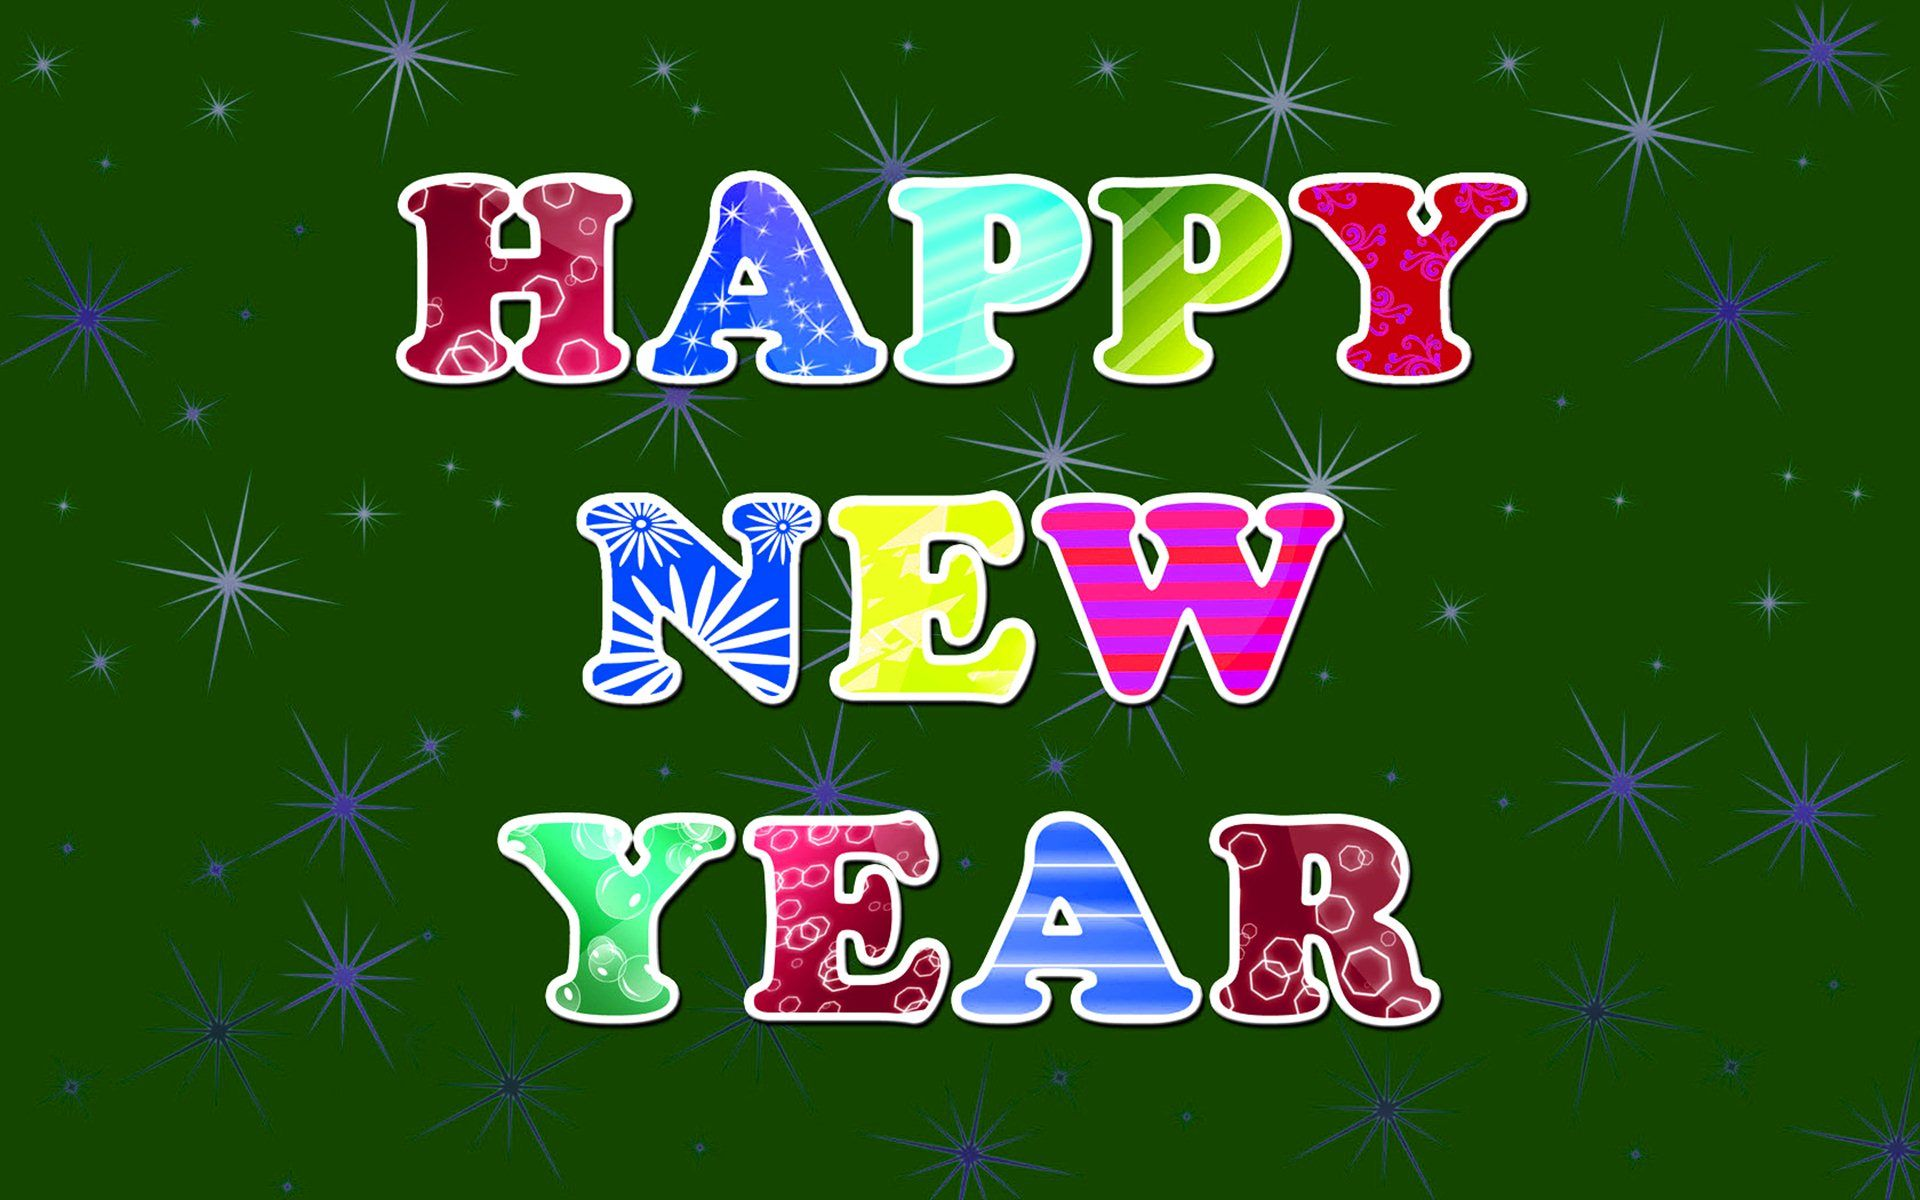 94 best holiday images new year images on pinterest holiday images happy new year and happy new year 2016